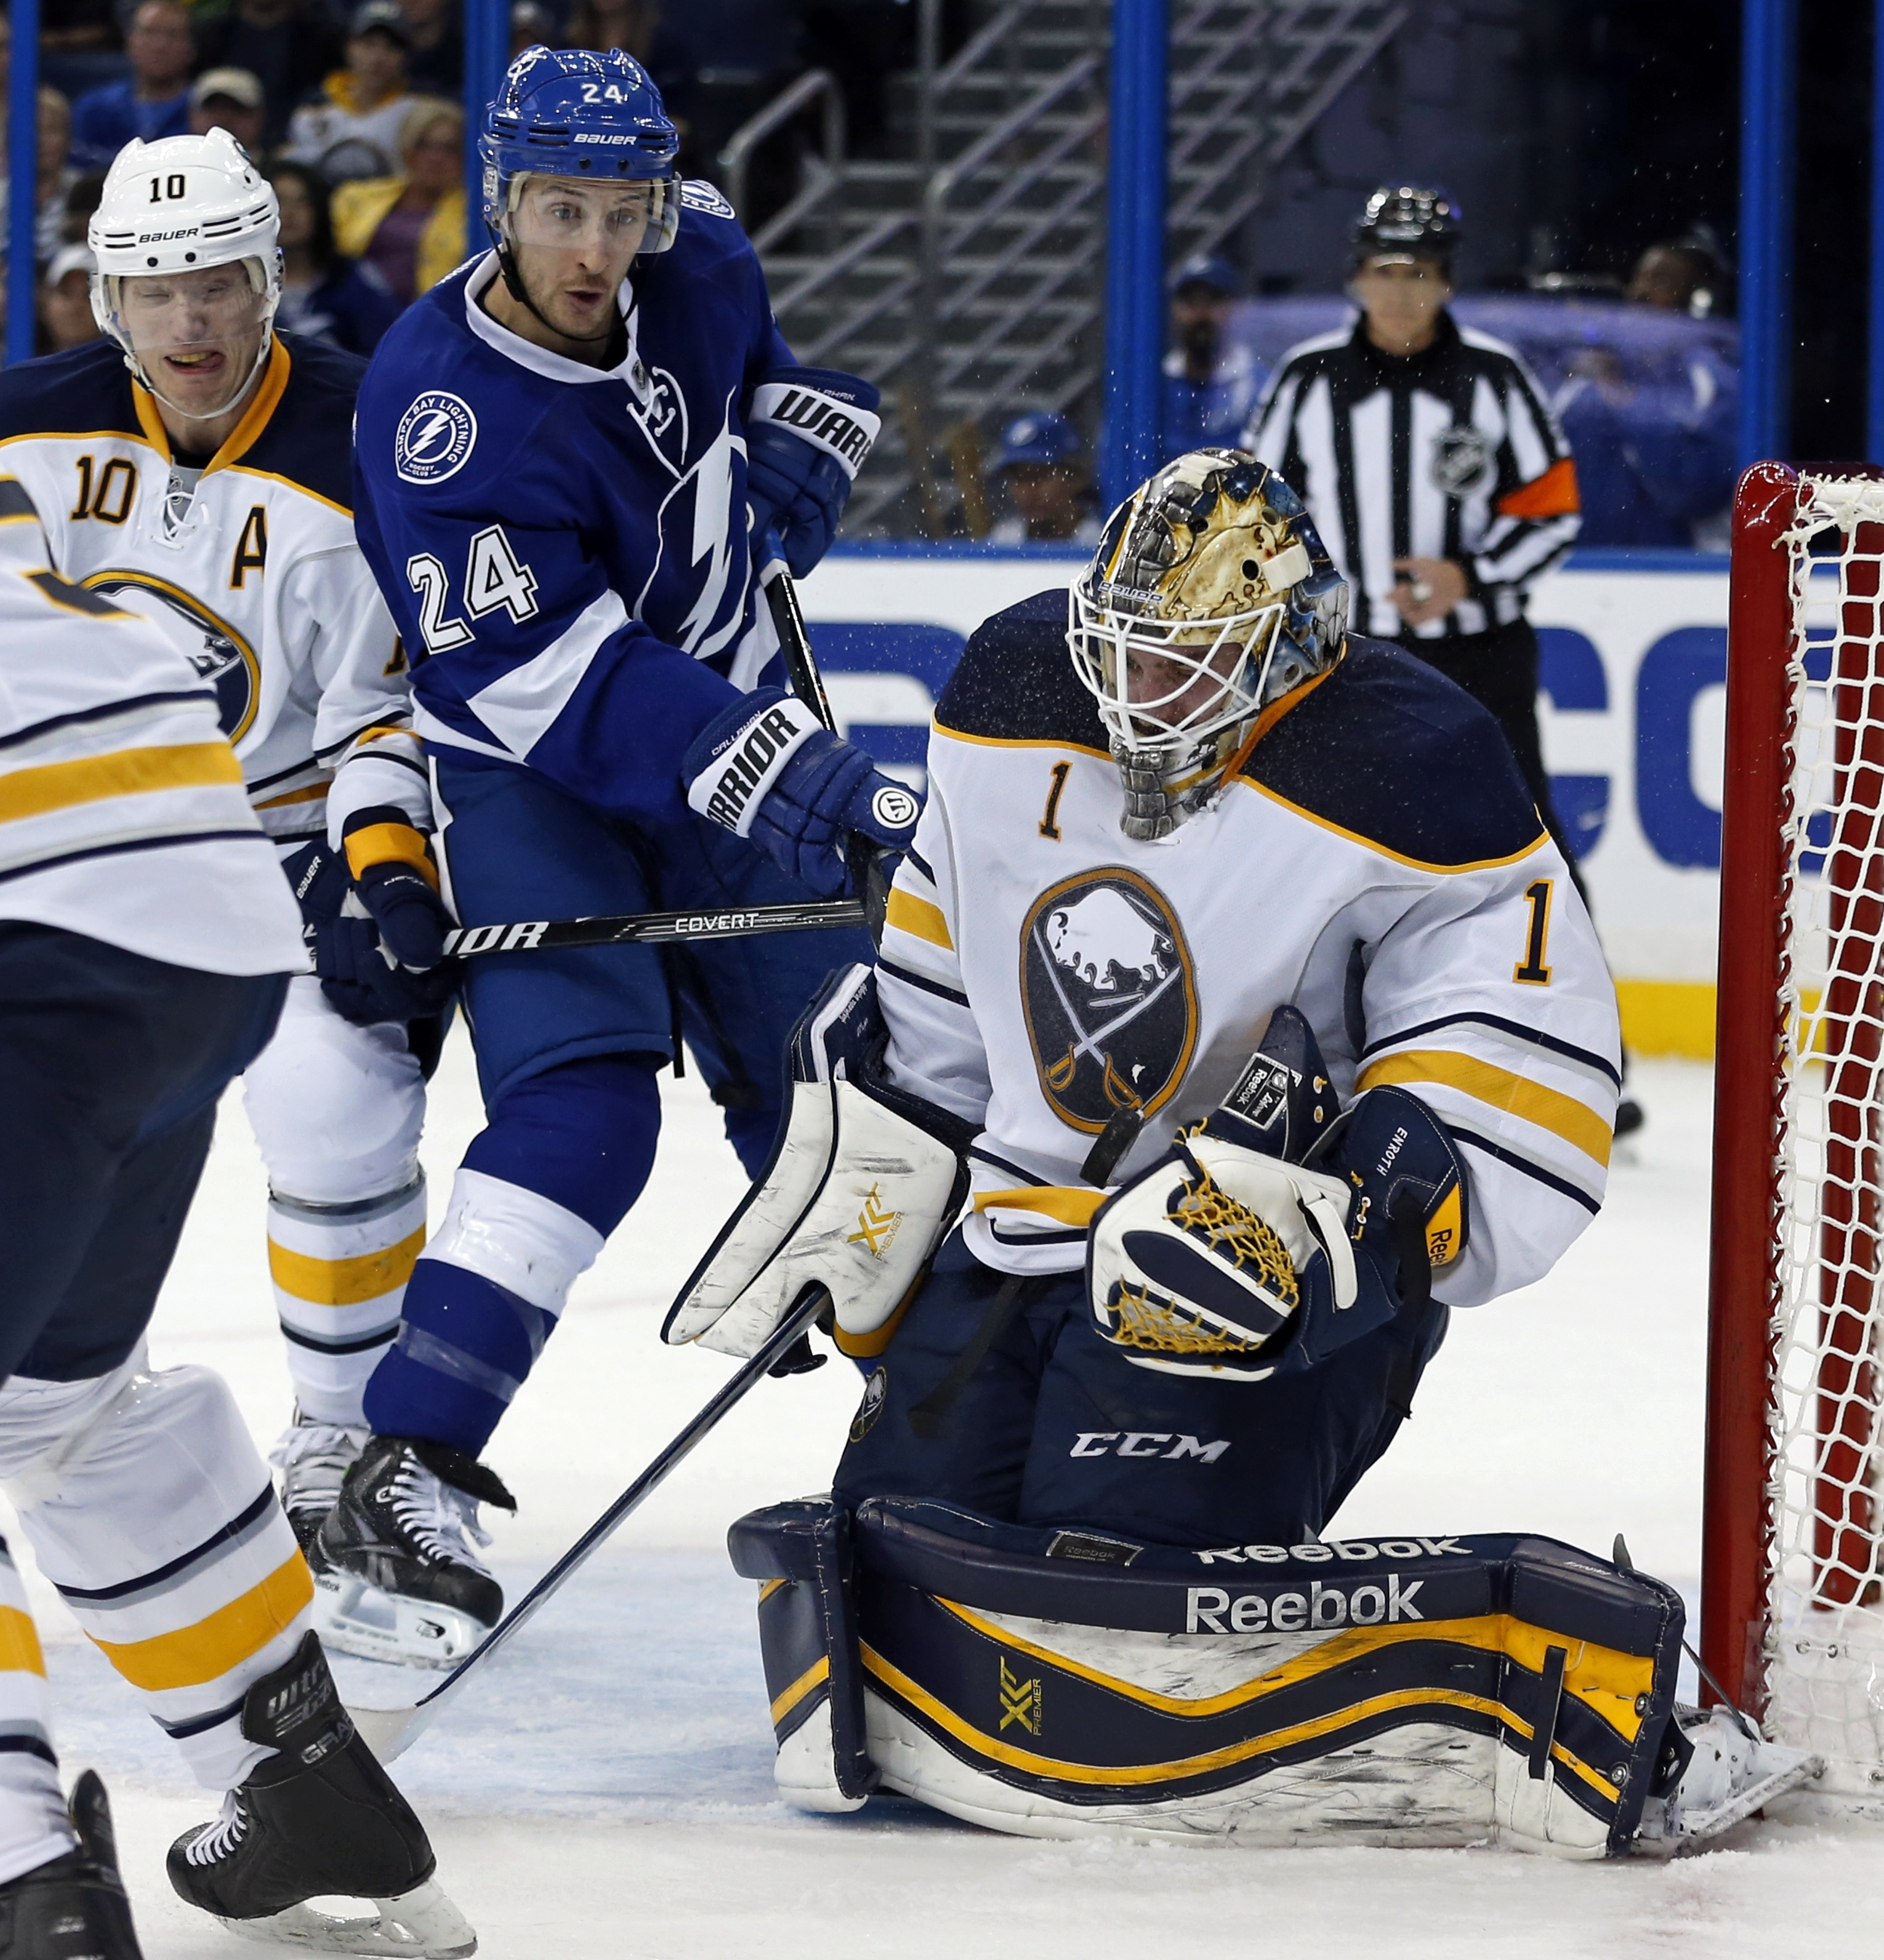 With the Lightning's Ryan Callahan at the doorstep, Sabres goalie Jhonas Enroth makes one of his 43 saves.